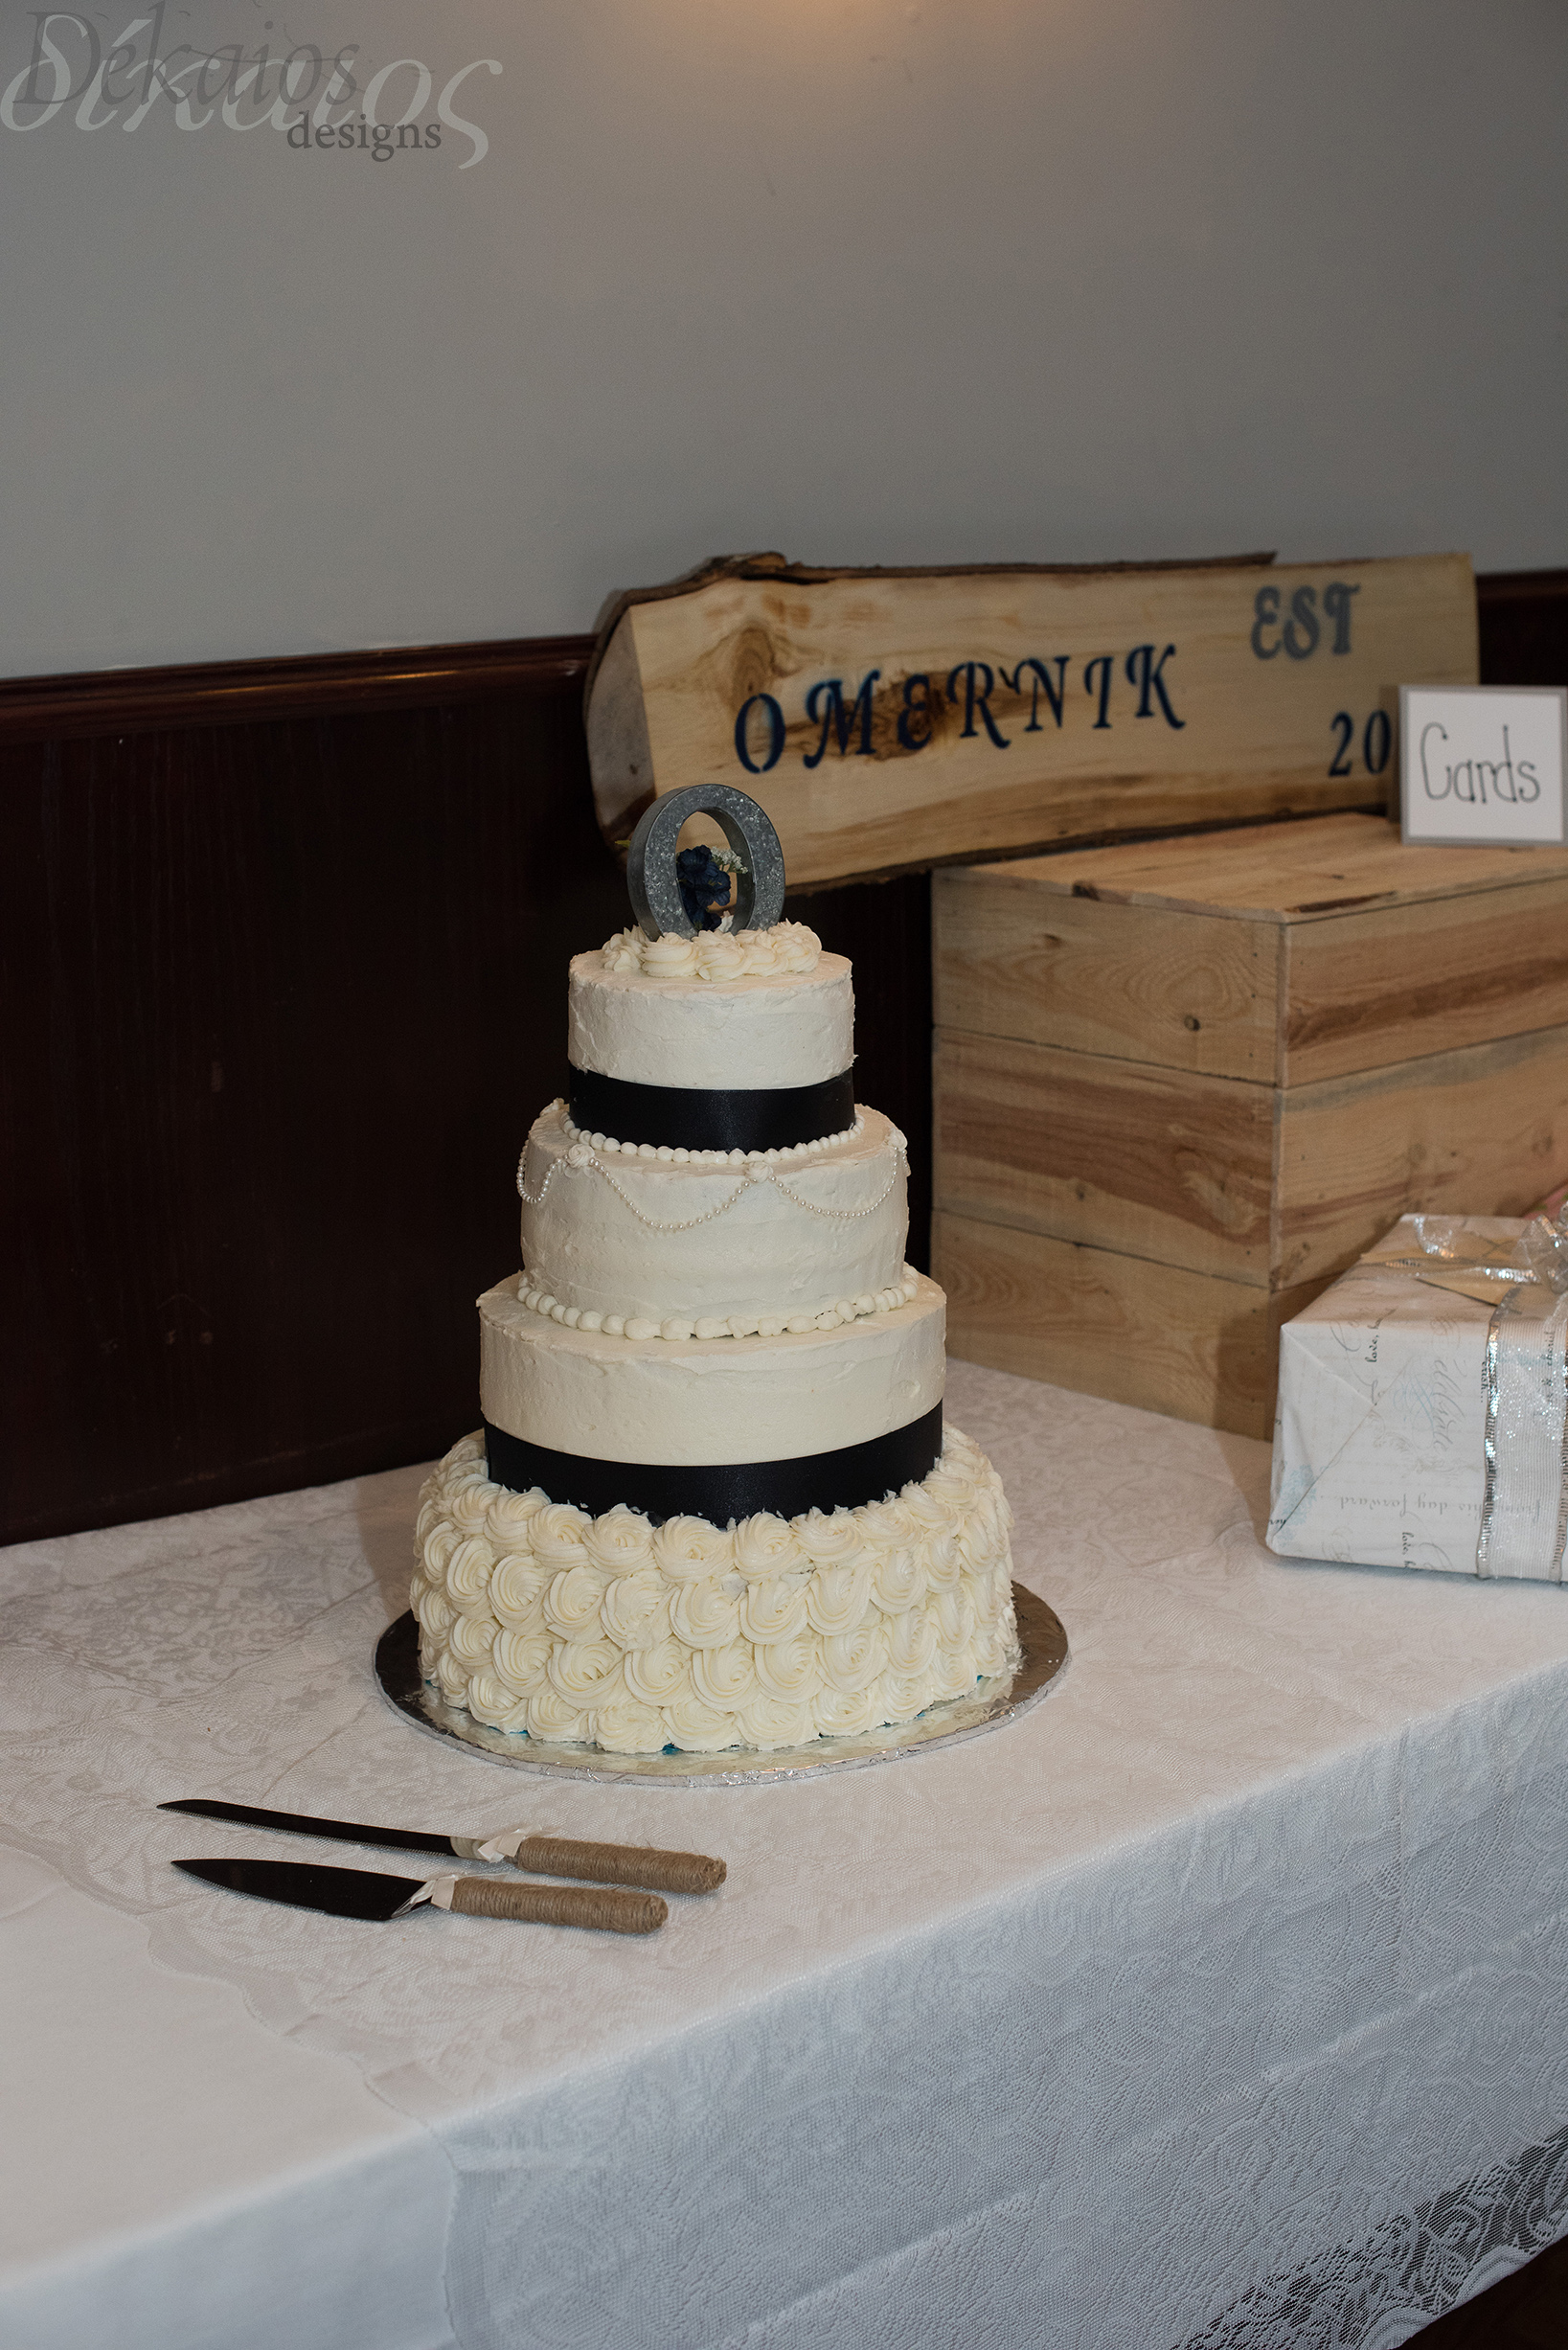 The log was made by Jake. I also thought the cake topper was a cute and creative way to use those tin letters.